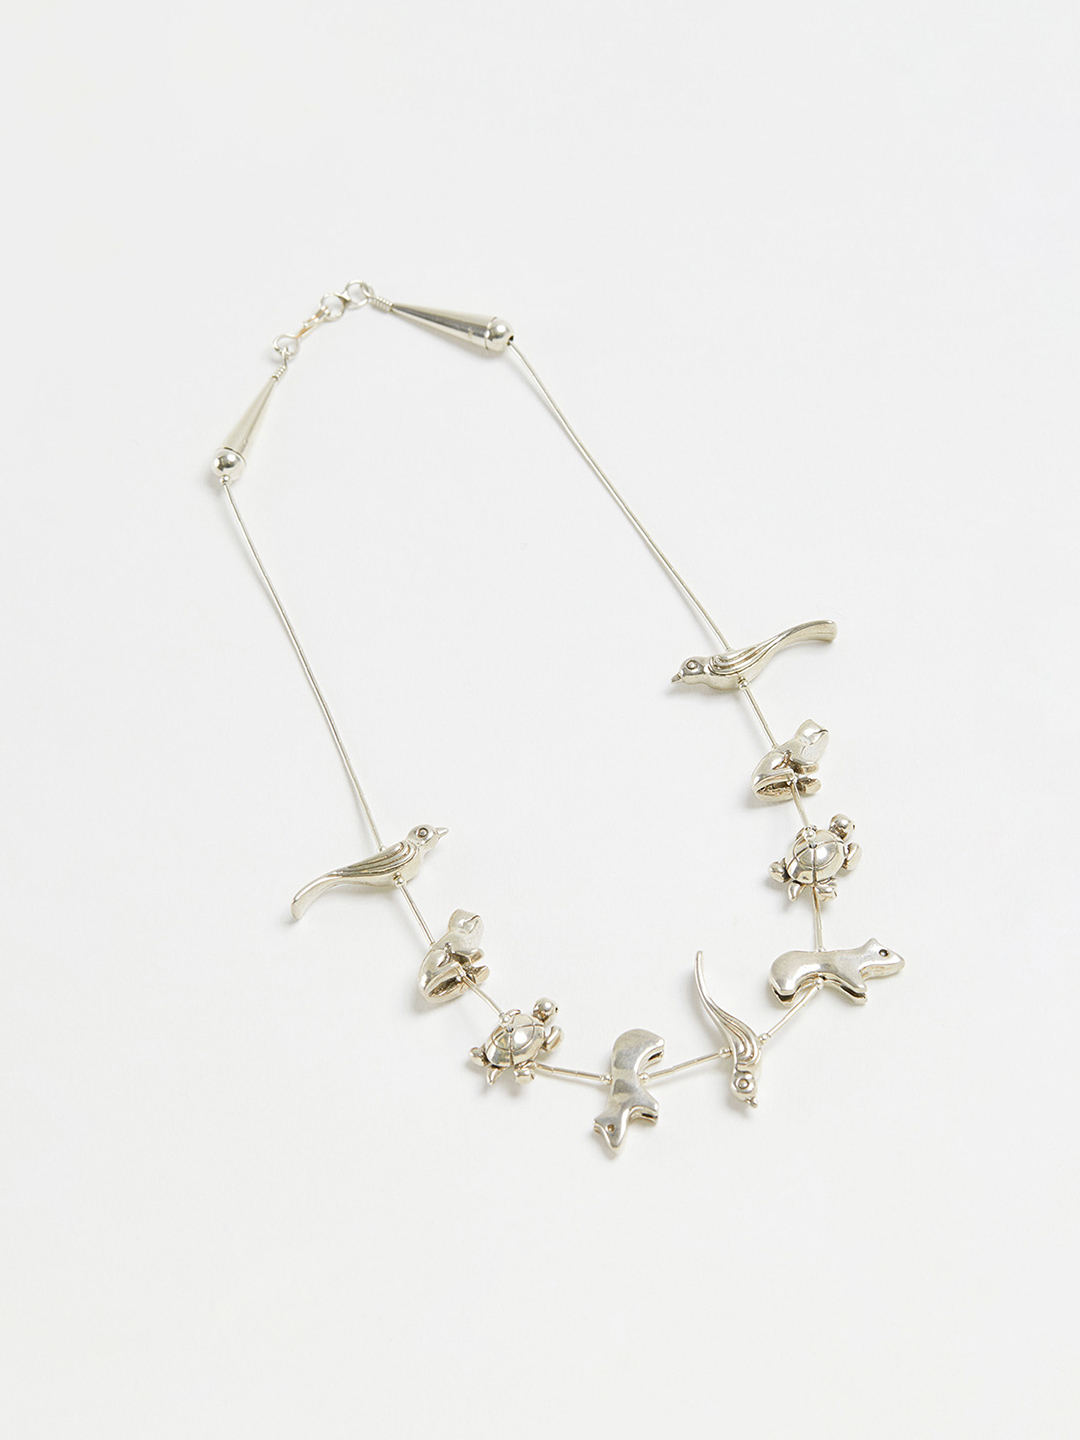 Animal Fetish Necklace - 42cm 9pcs Silver